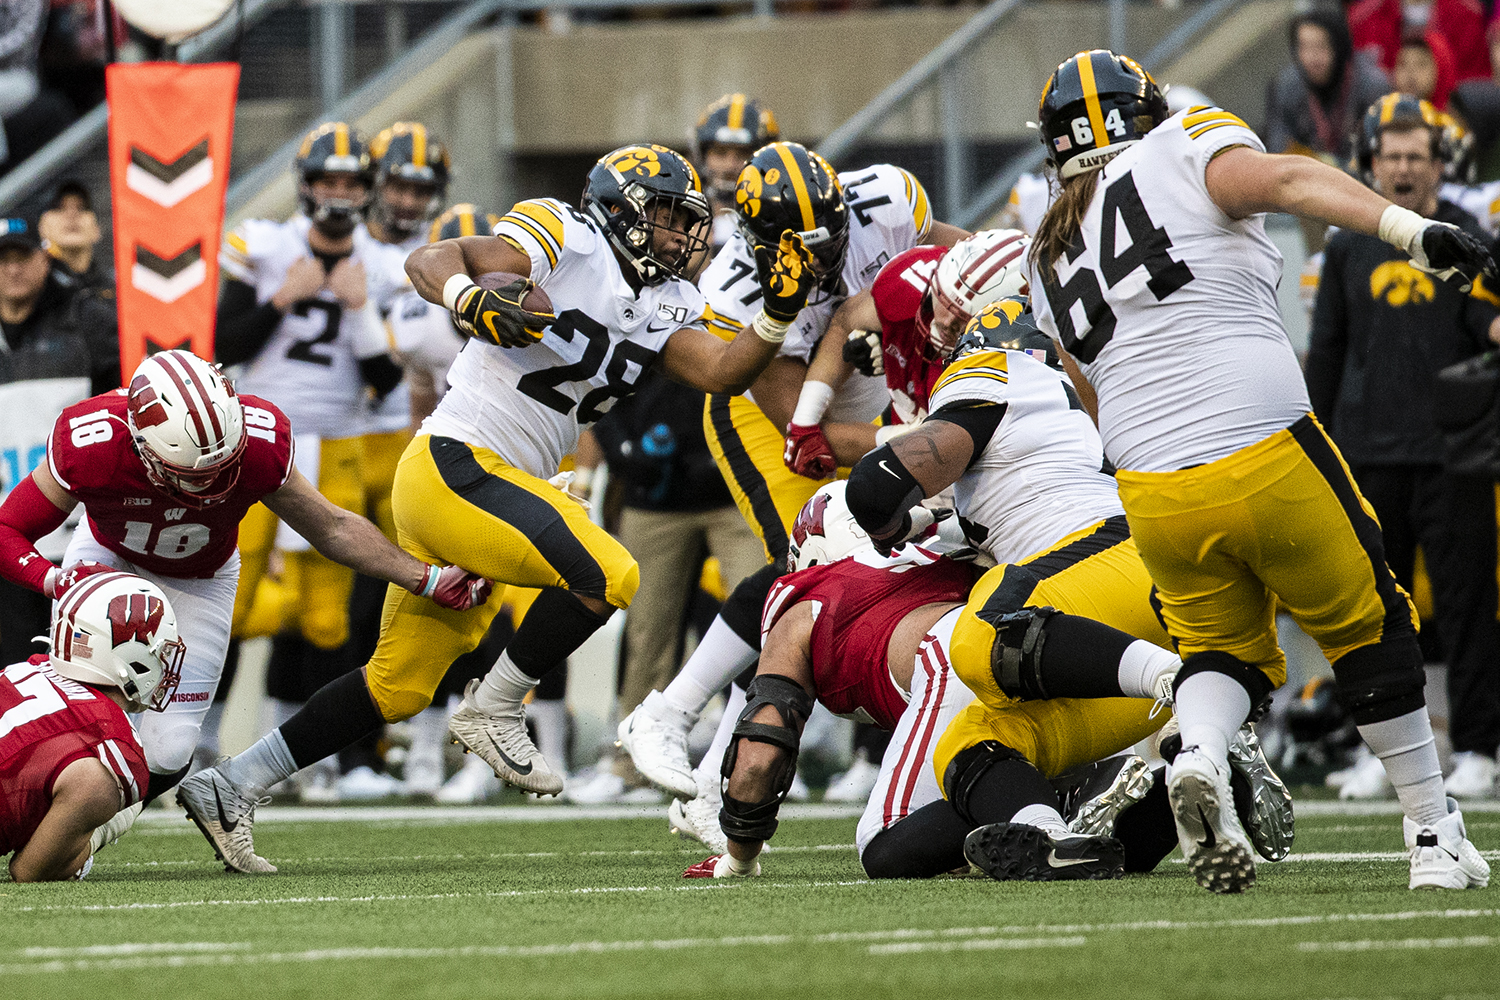 Iowa running back Toren Young carries the ball during a football game between Iowa and Wisconsin at Camp Randall Stadium in Madison on Saturday, November 9, 2019.